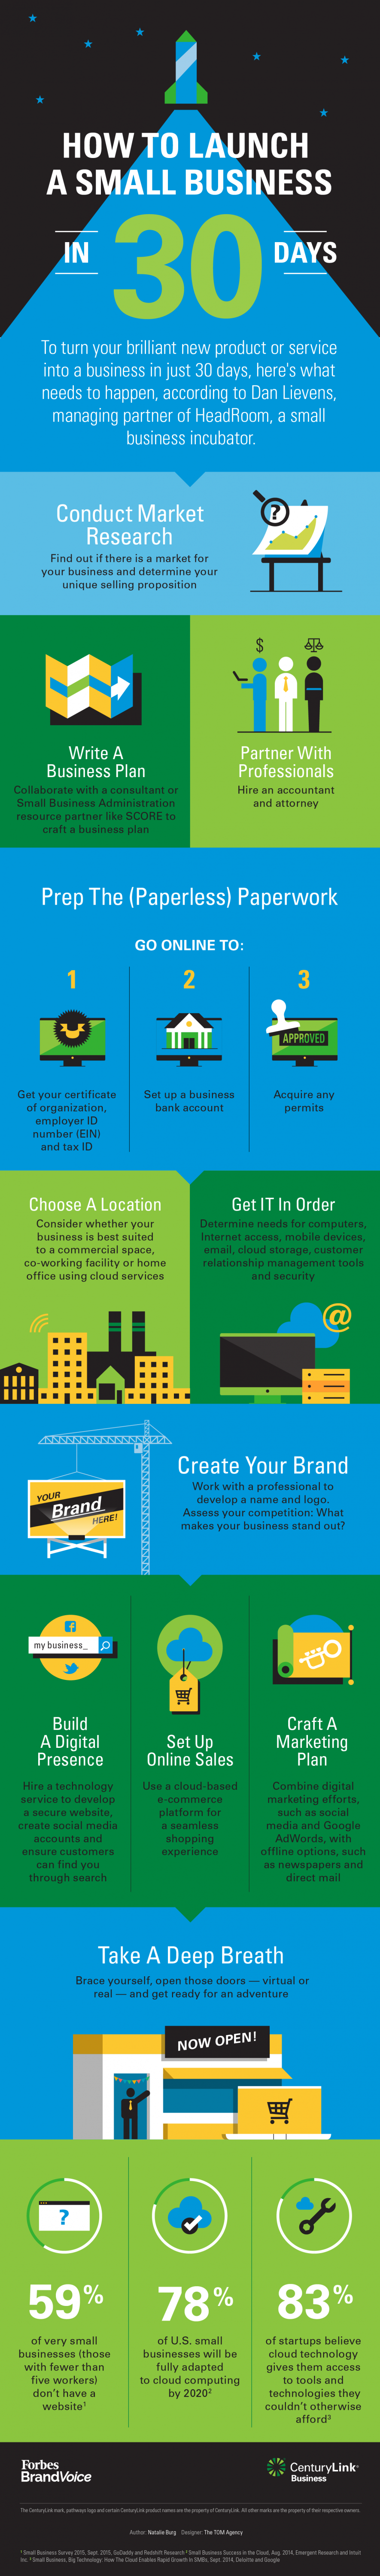 Launch a Business Infographic